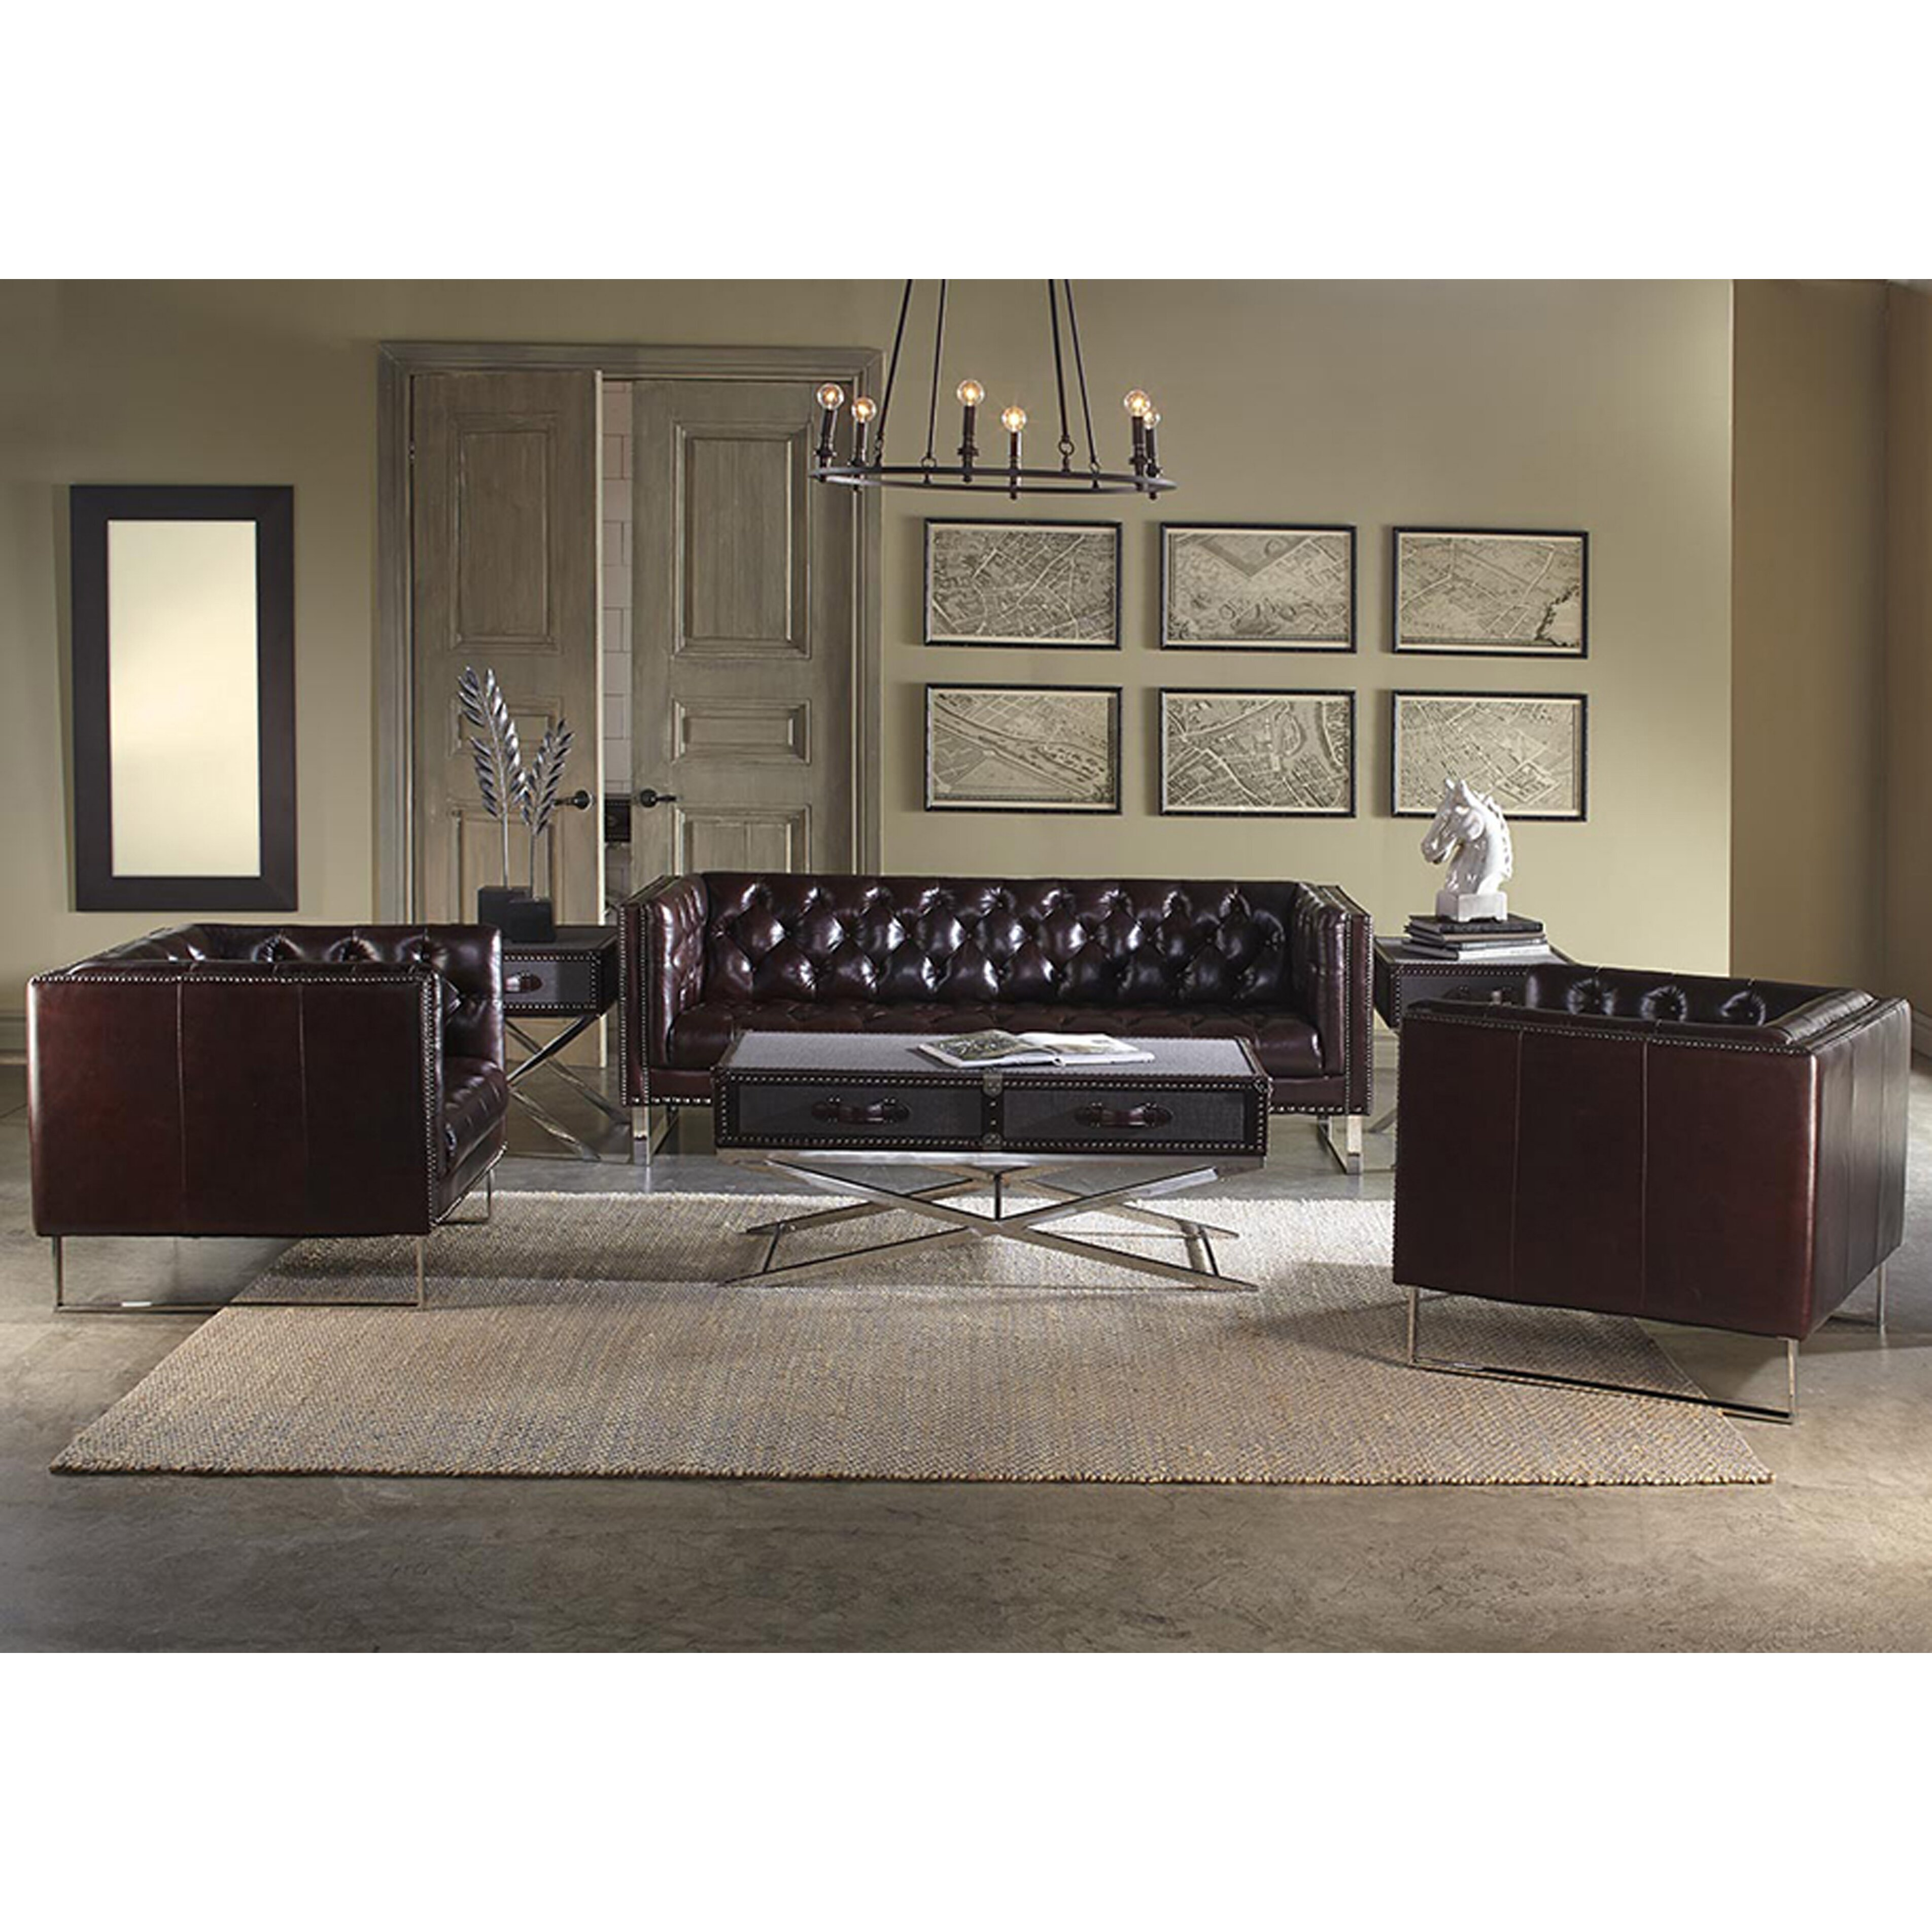 Lazzaro leather bordeaux living room collection